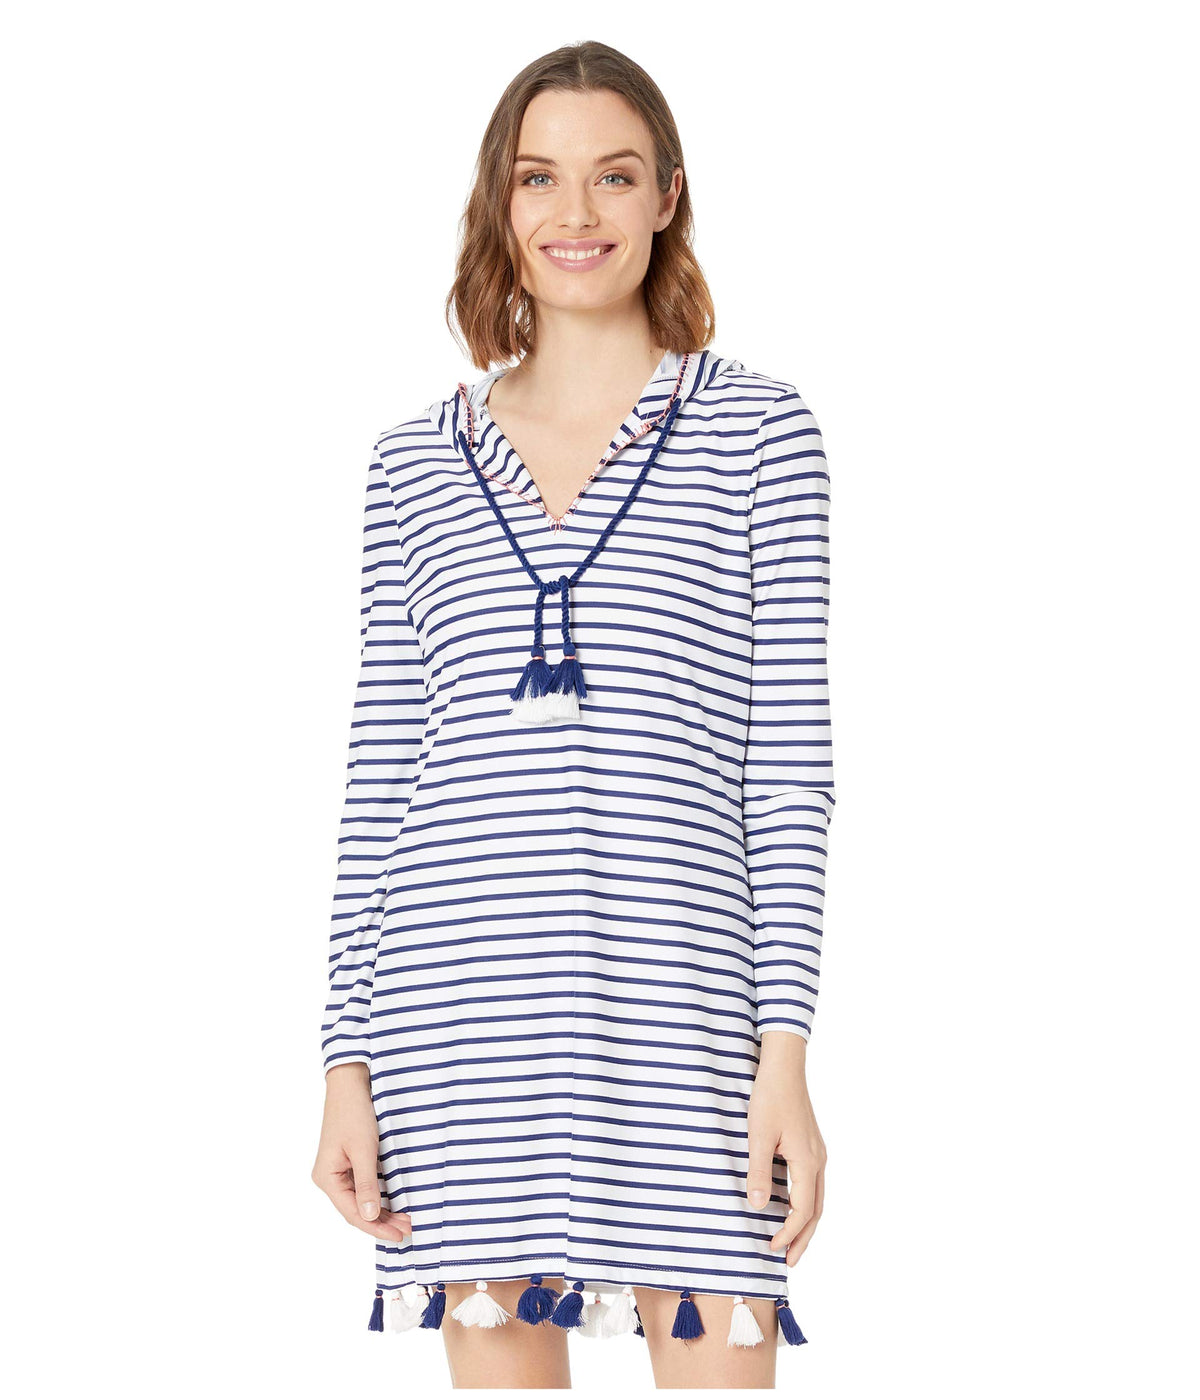 Essentials Coverluxe Hooded Cover-Up